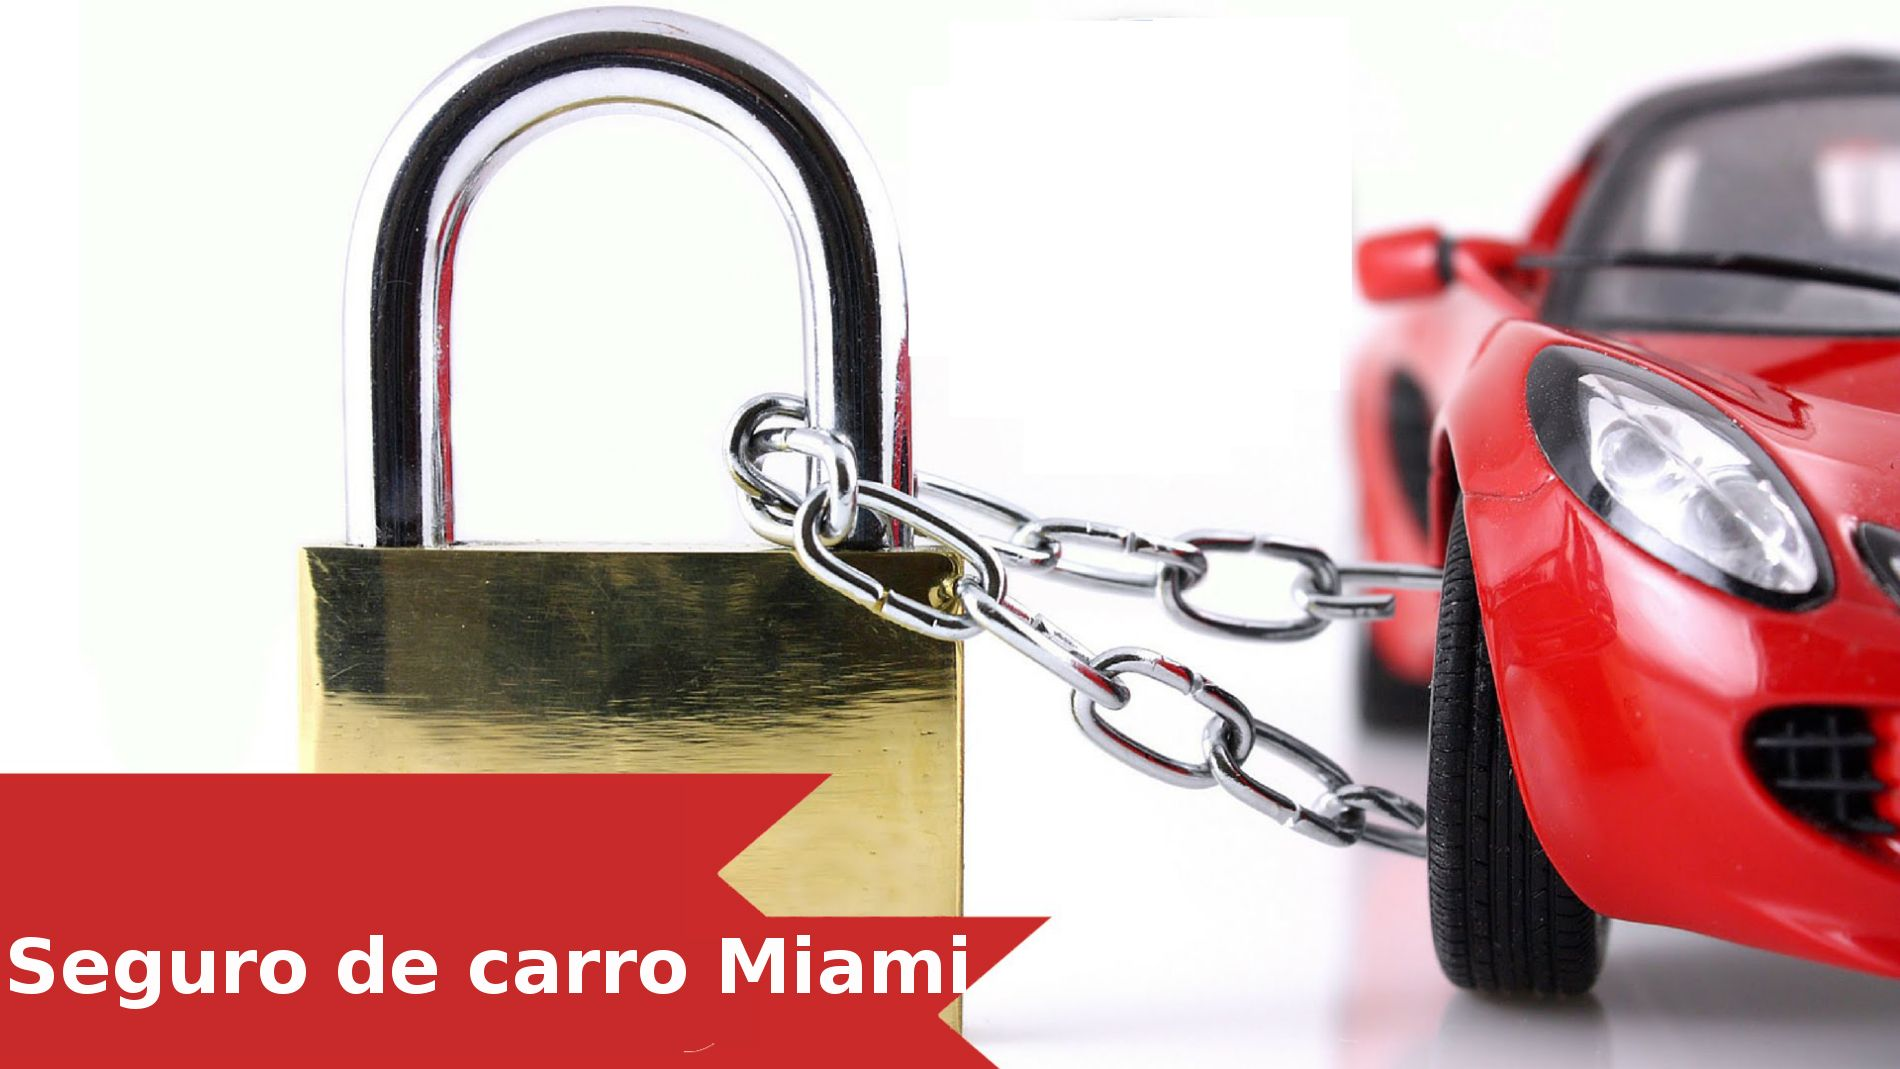 The Best Entire Car Insurance In Miami According To Your Needs